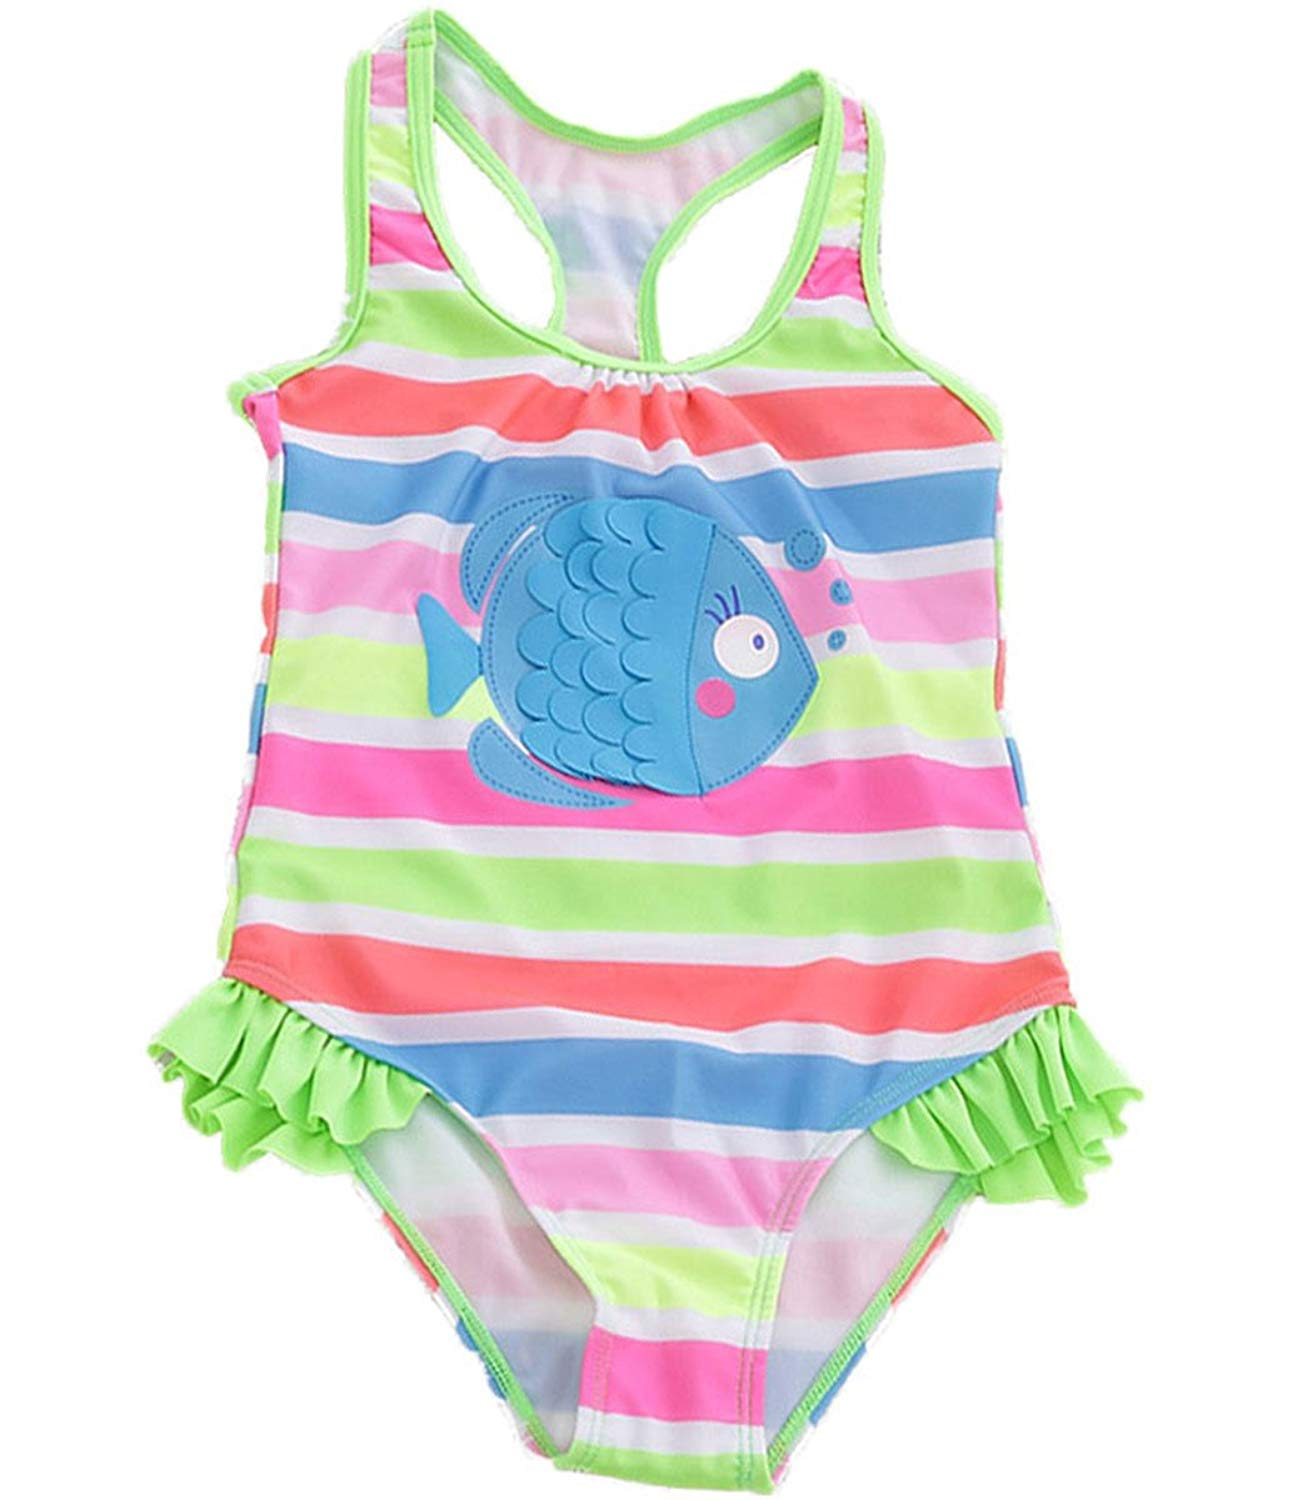 bb293602019 Get Quotations · Little Kids Girls One Pieces Swimwear Candy Color Cartoon  Fish Swimsuit Bathing Suits